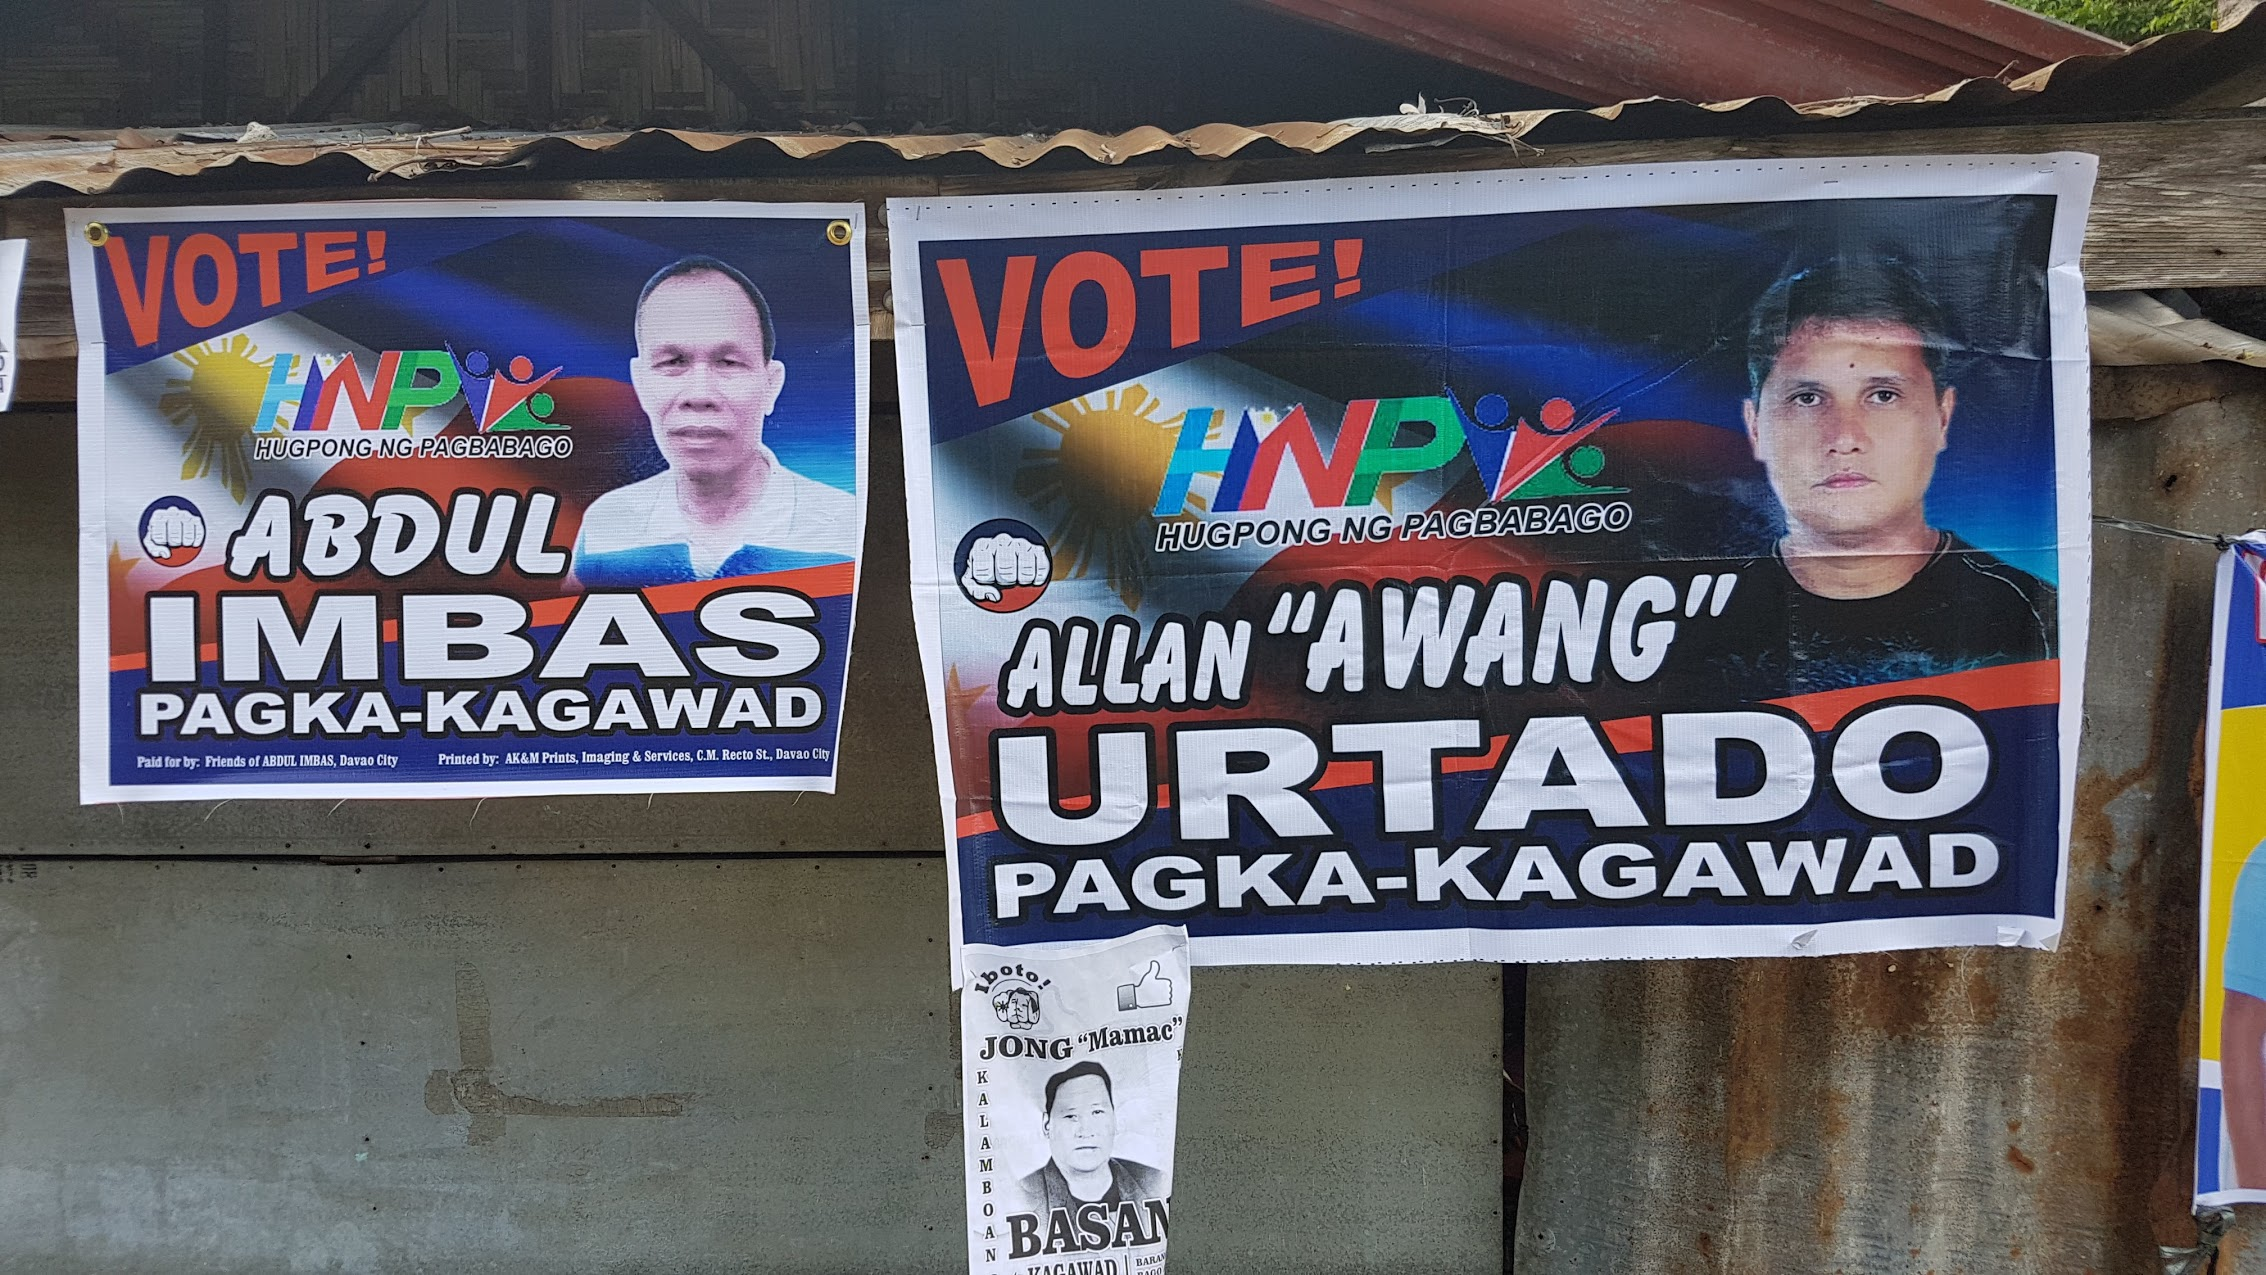 TEAM HNP? Posters of Bago Aplaya candidates Abdul Imbas and Allan 'Awang' Urtado show the logo of Hugpong ng Pagbabago. Photo by Mick Basa/Rappler